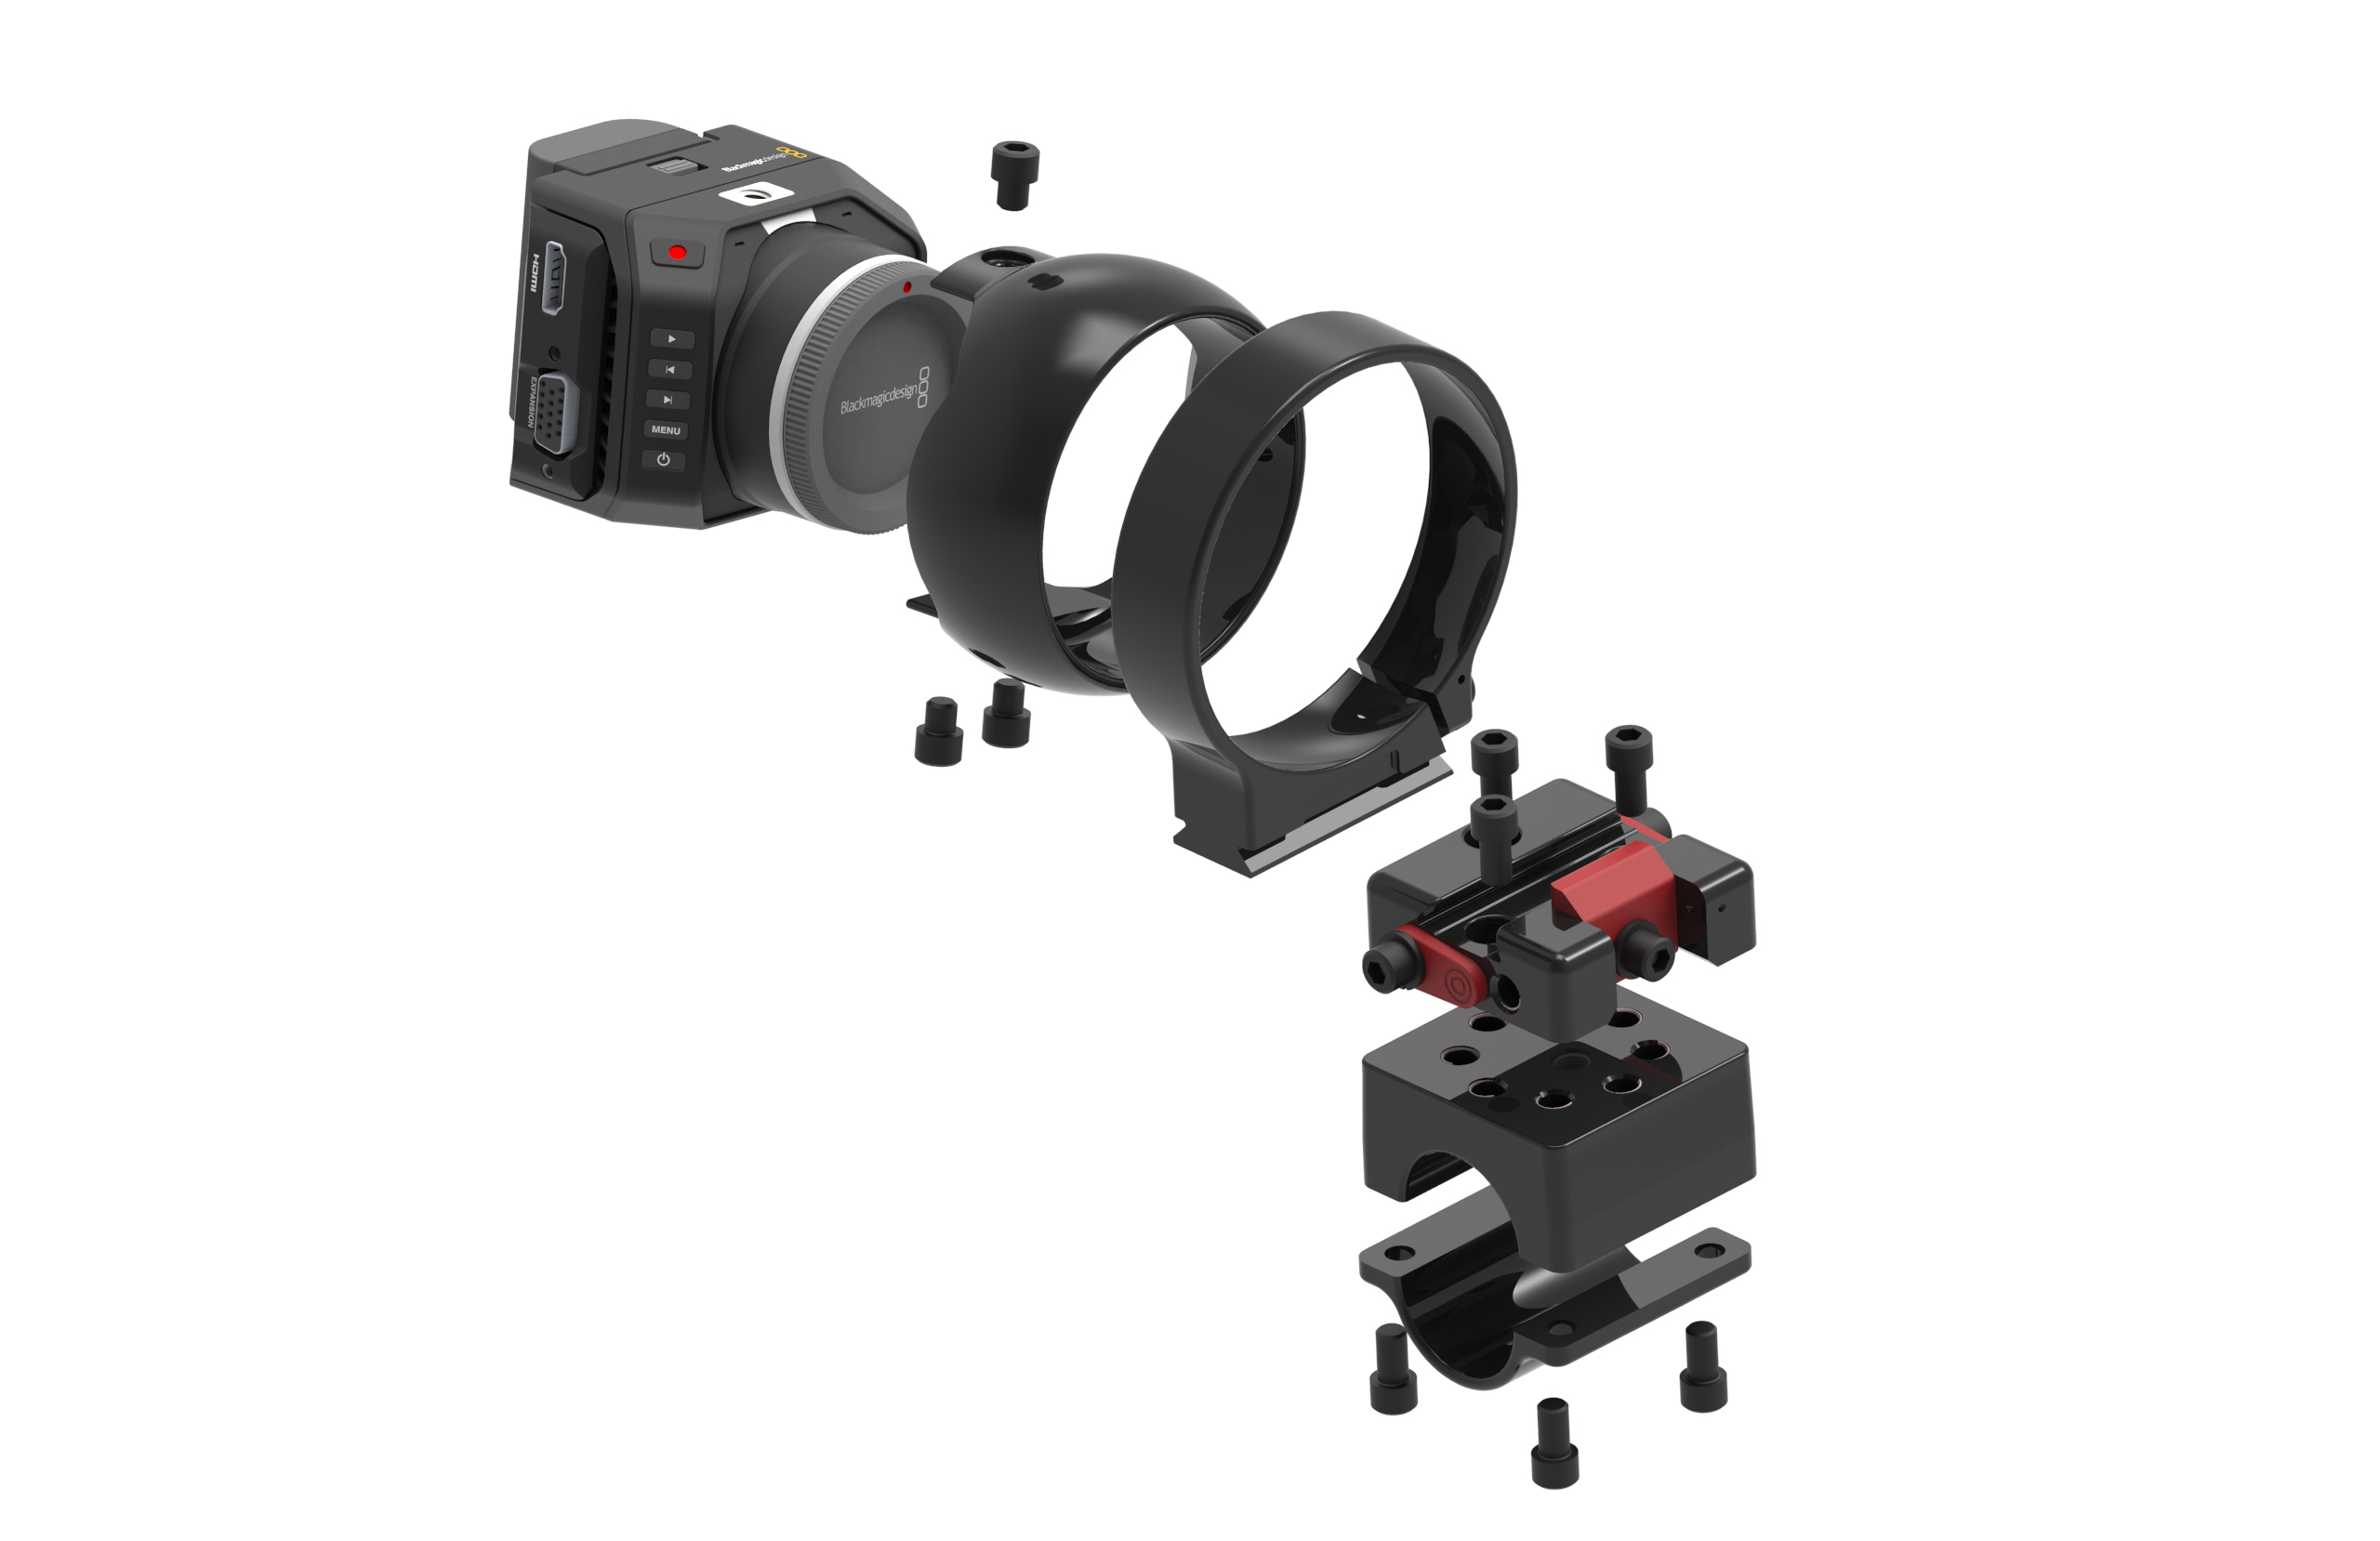 PEOVI Black Magic camera mount